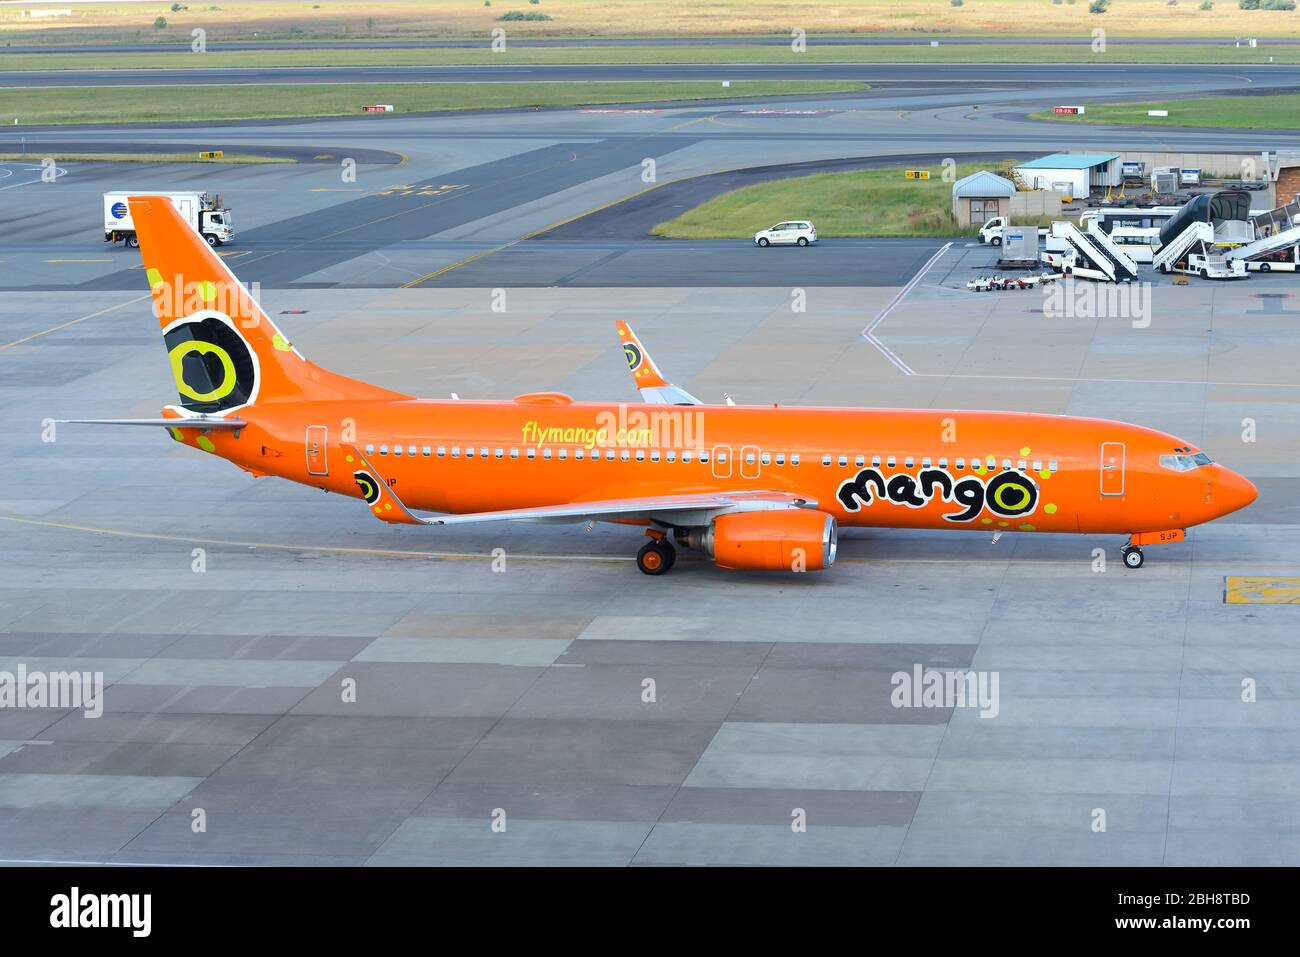 Mango Airlines Boeing 737 Taxiing At Johannesburg Airport South Africa Aircraft 737 800 Zs Sjp Operating Domestic Flight Orange Livery Stock Photo Alamy